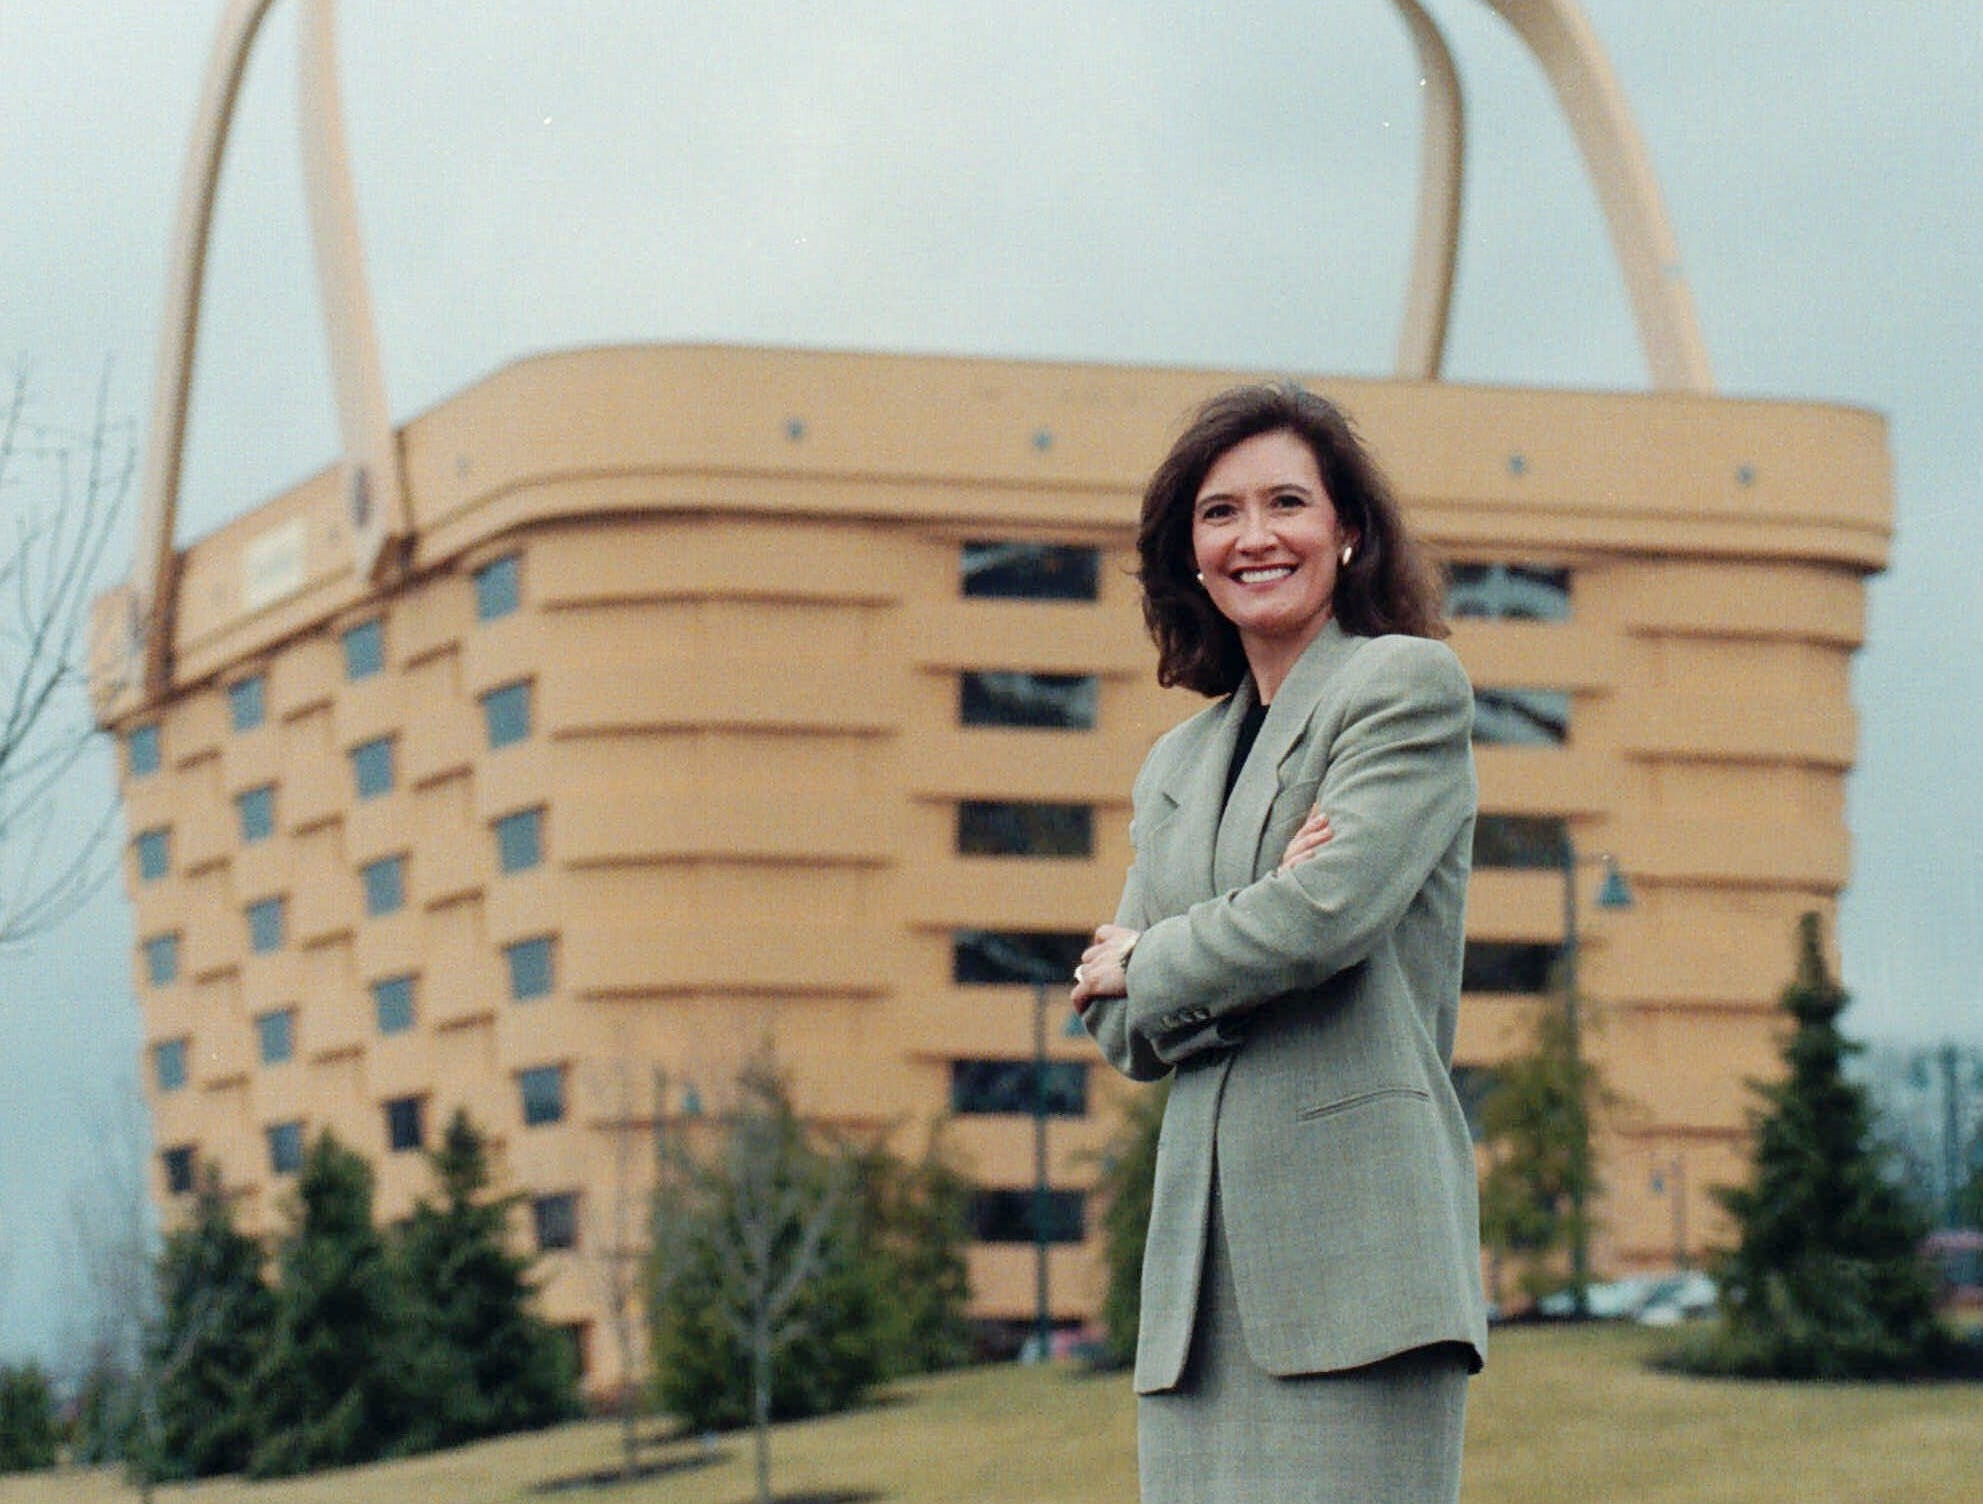 Tami Longaberger president and chief executive of The Longaberger Company stands outside the basket-shaped corporate office building in Newark Ohio Tuesday Feb. 2 1999. The company which her father started in 1973 with five basket weavers employed thousands of workers and produced millions of hand woven baskets a year. (AP Photo/File Chris Kasson)